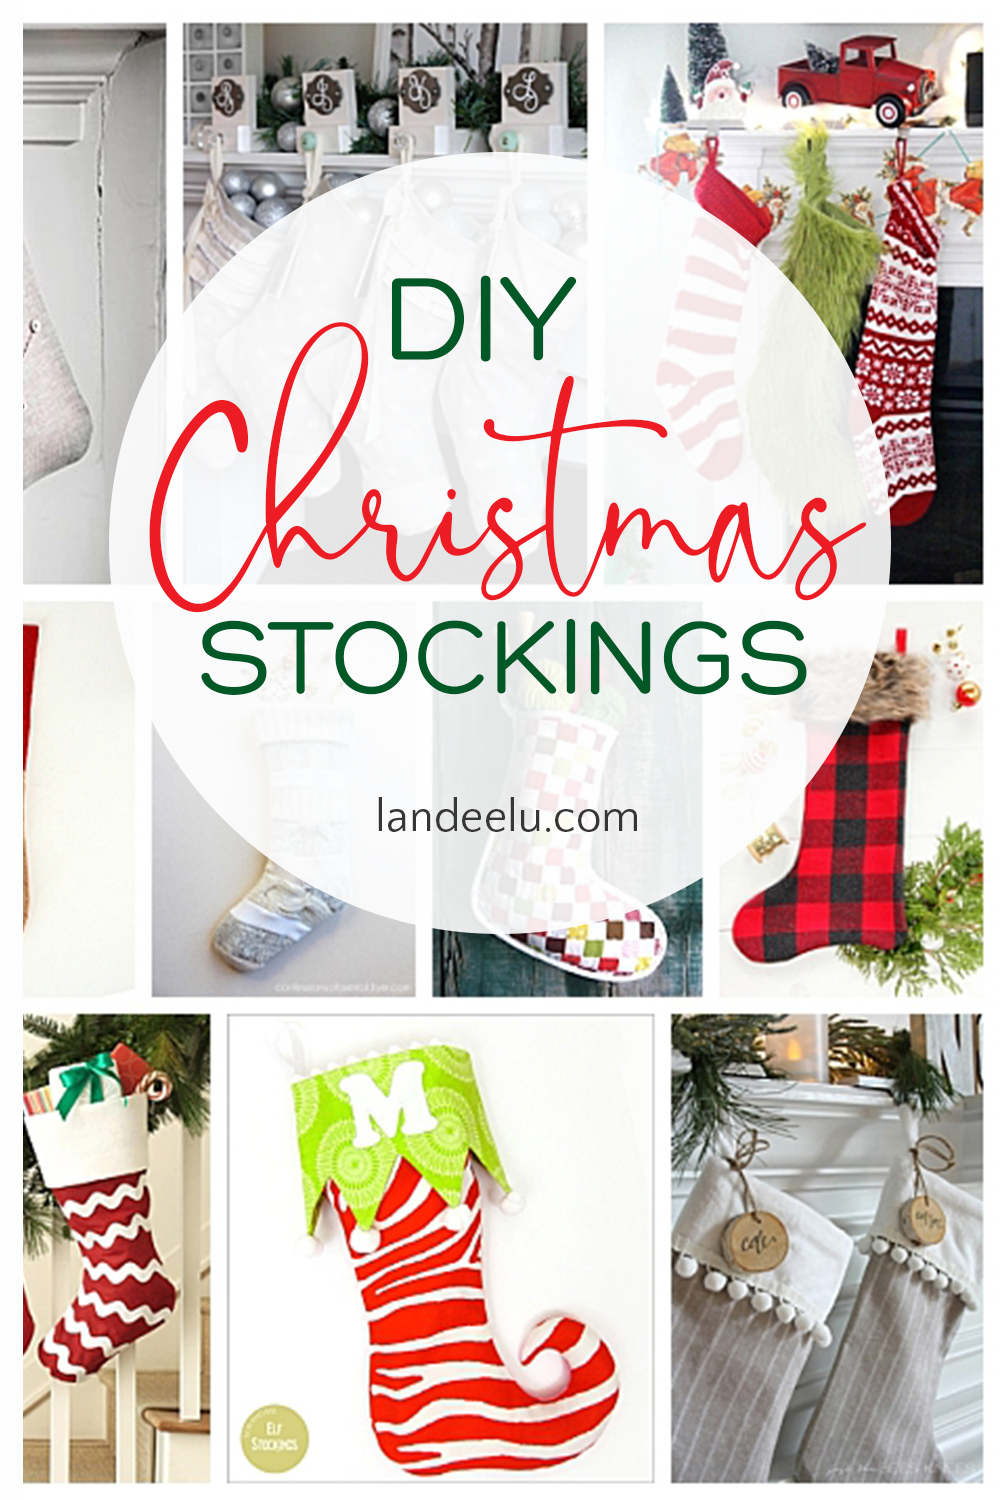 Darling Christmas stockings for you to make yourself... that makes them extra special! #diychristmasstockings #diystockings #christmasstockings #christmascrafts #stockings